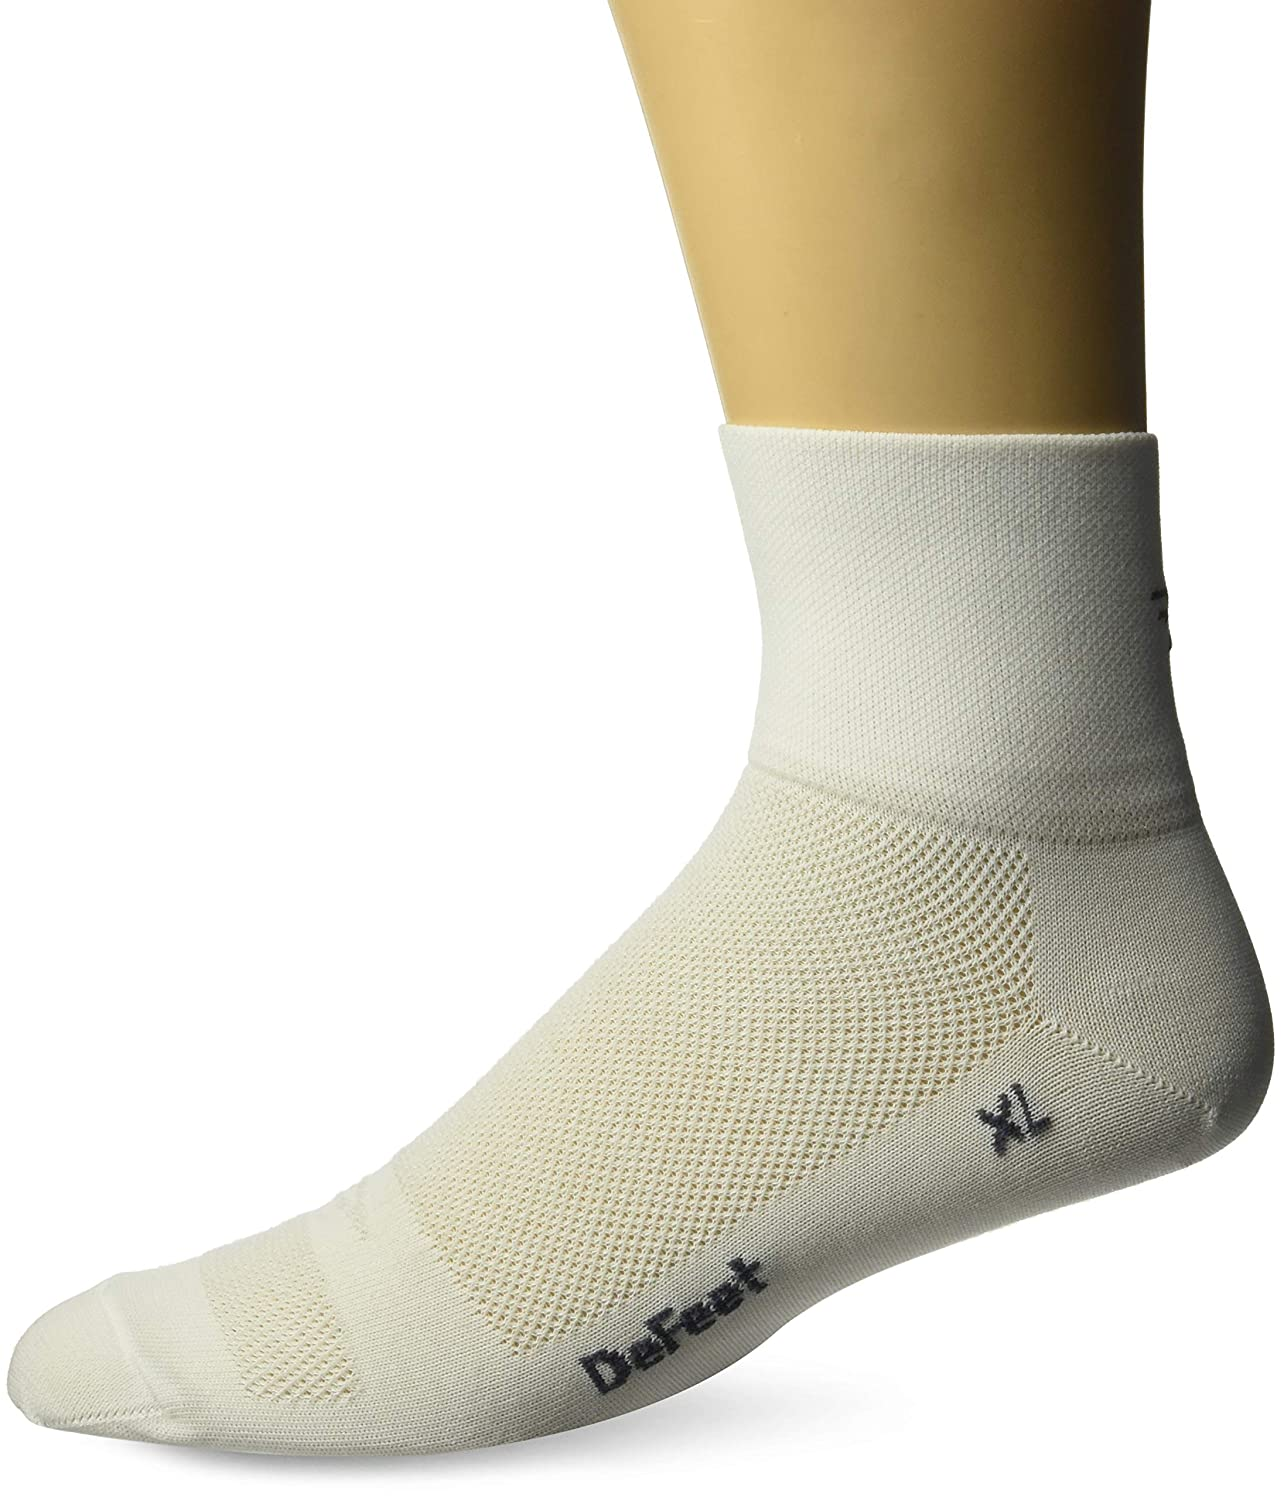 DEFEET Aireator 5 Double Layer Cuff Socks Pro-Motion Distributing Direct AIRTDLB301